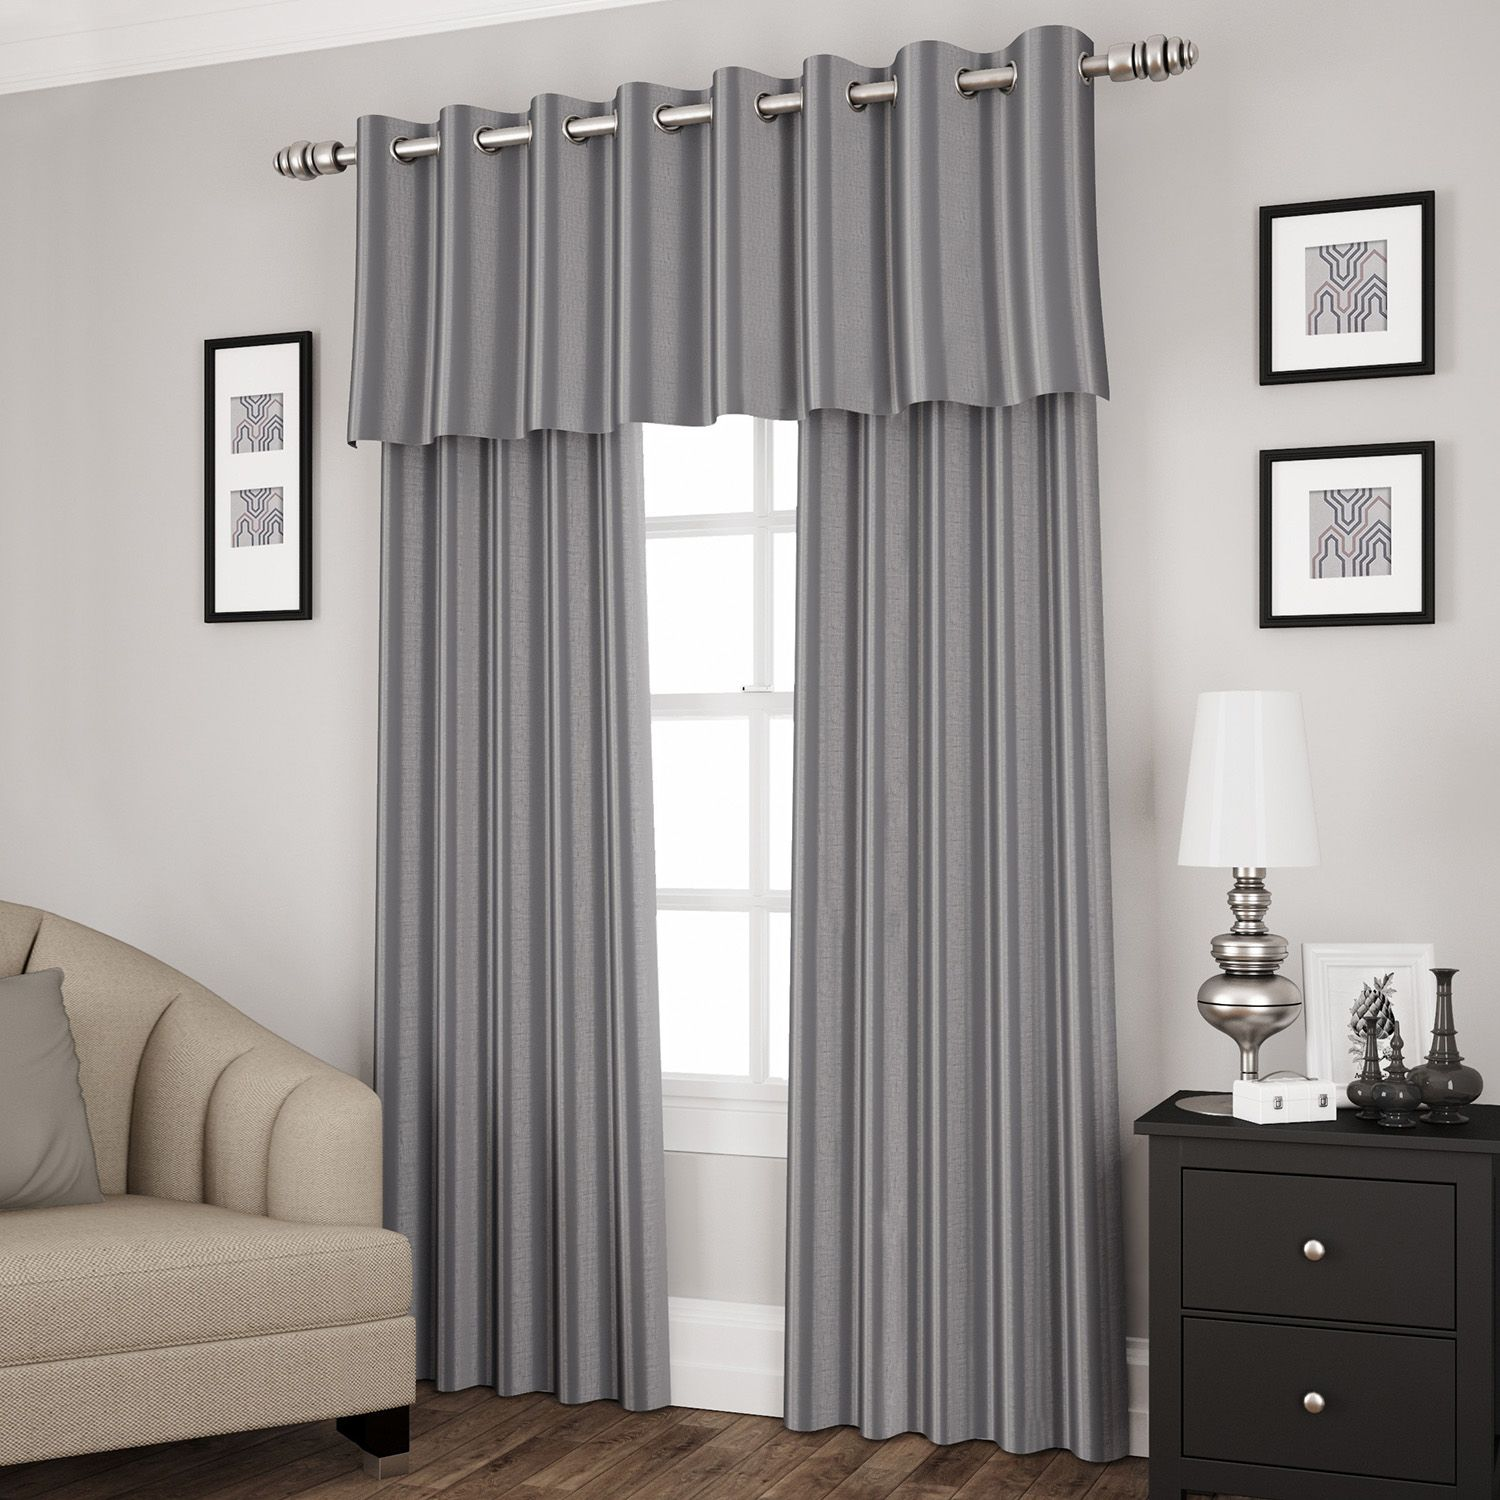 Blackouts Curtains u0026 Drapes - Window Treatments, Home Decor | Kohlu0027s